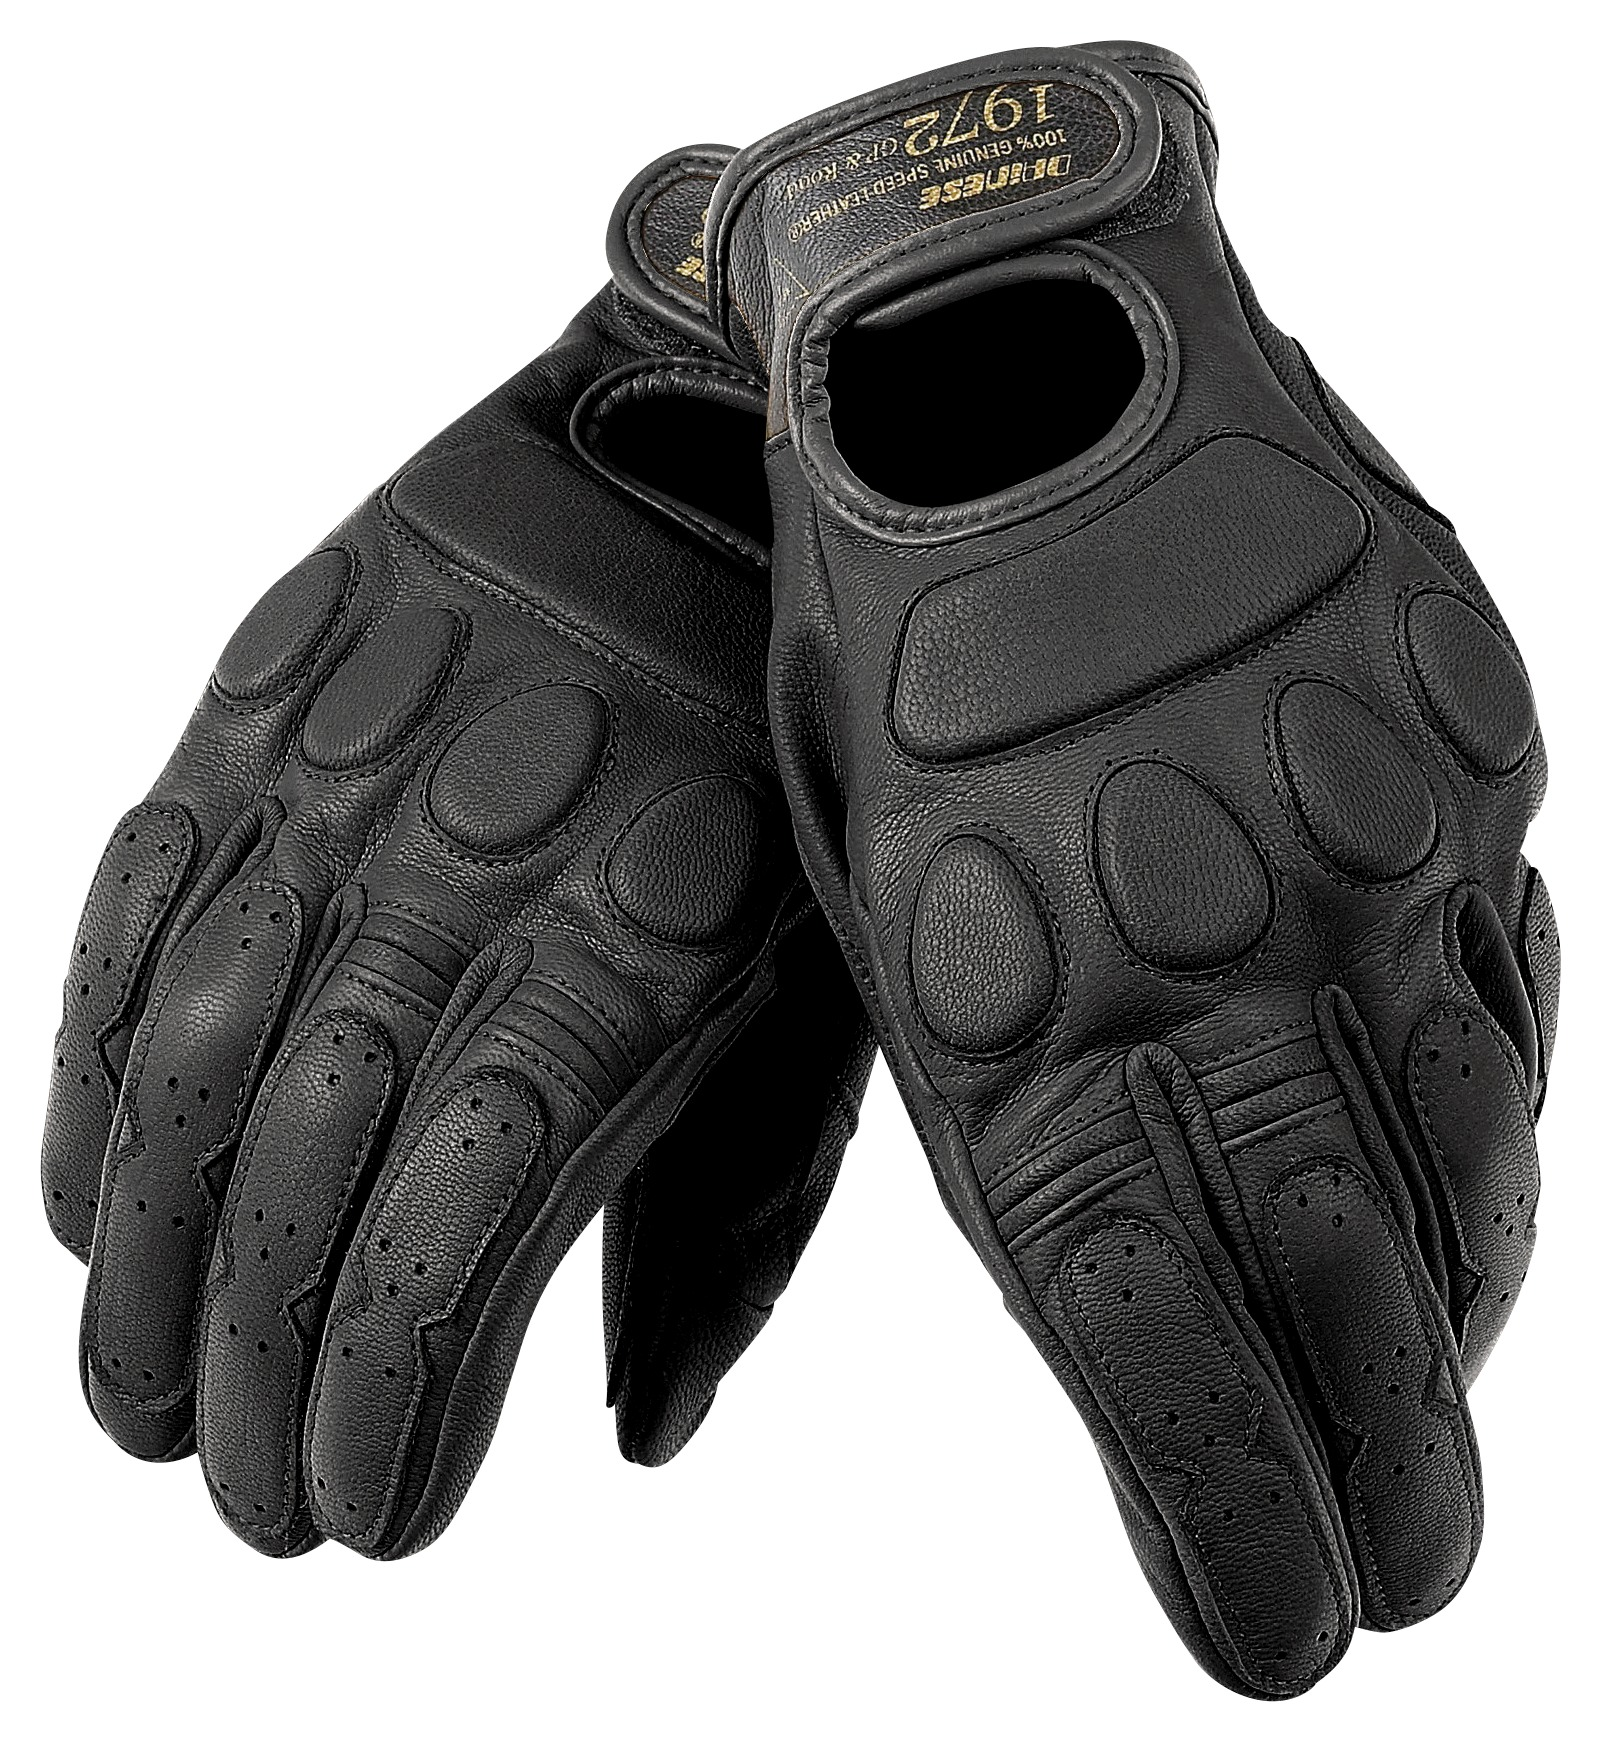 Motorcycle gloves smell - Motorcycle Gloves Smell 17